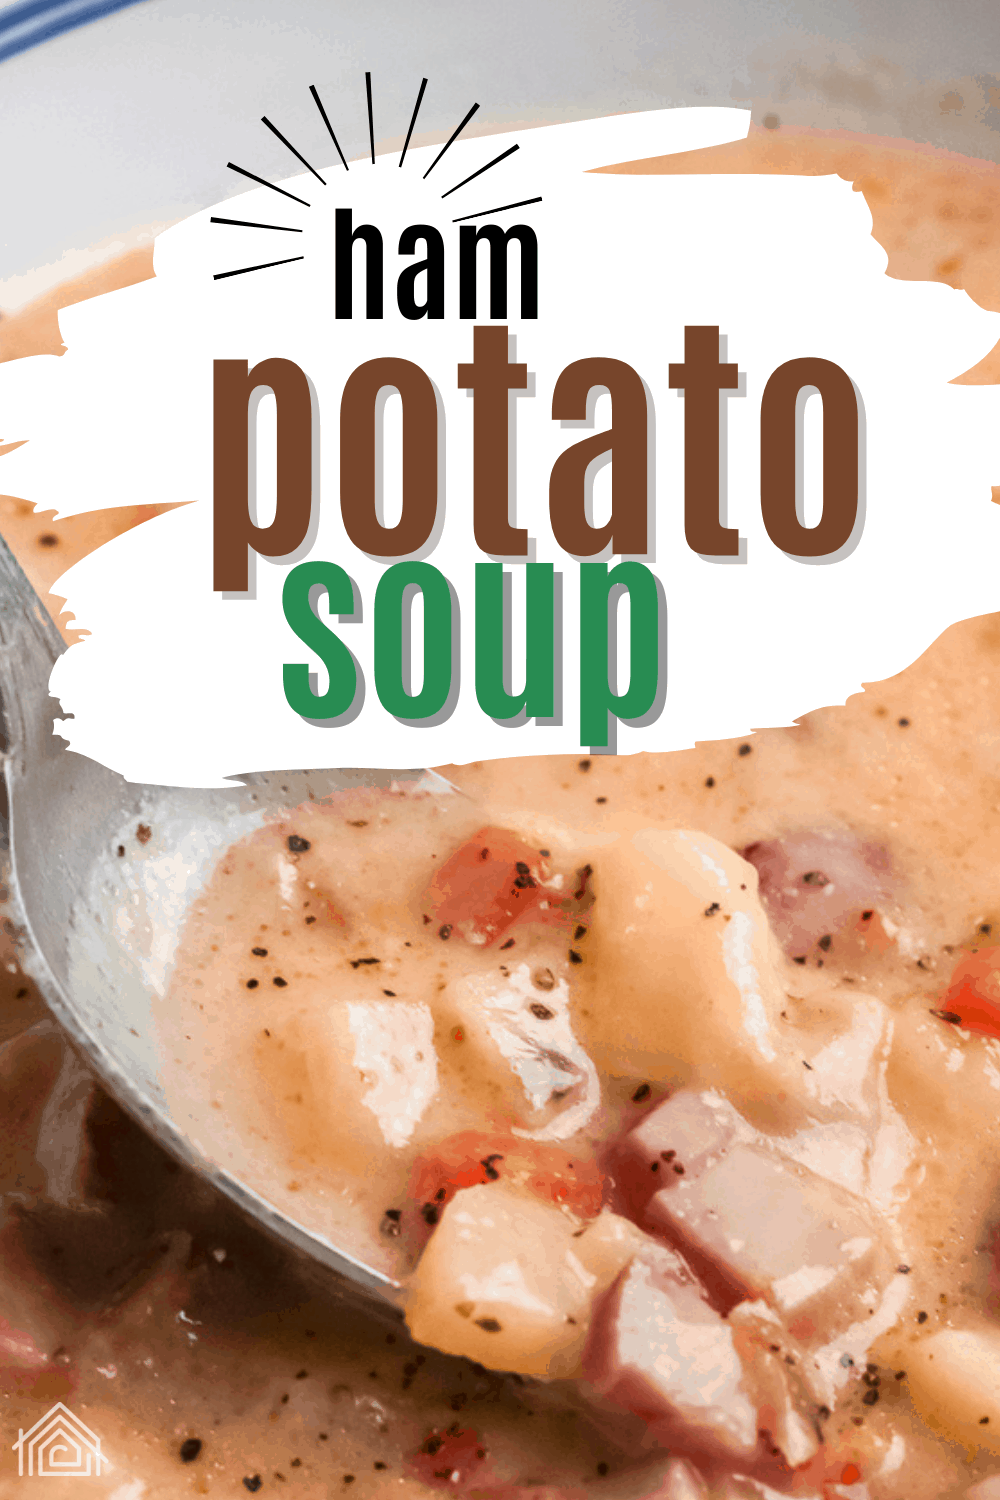 This is the perfect soup to make for any time of year. It's hearty, filling, and delicious! You'll be enjoying this easy-to-make soup in no time at all. So give it a try today! via @mystayathome